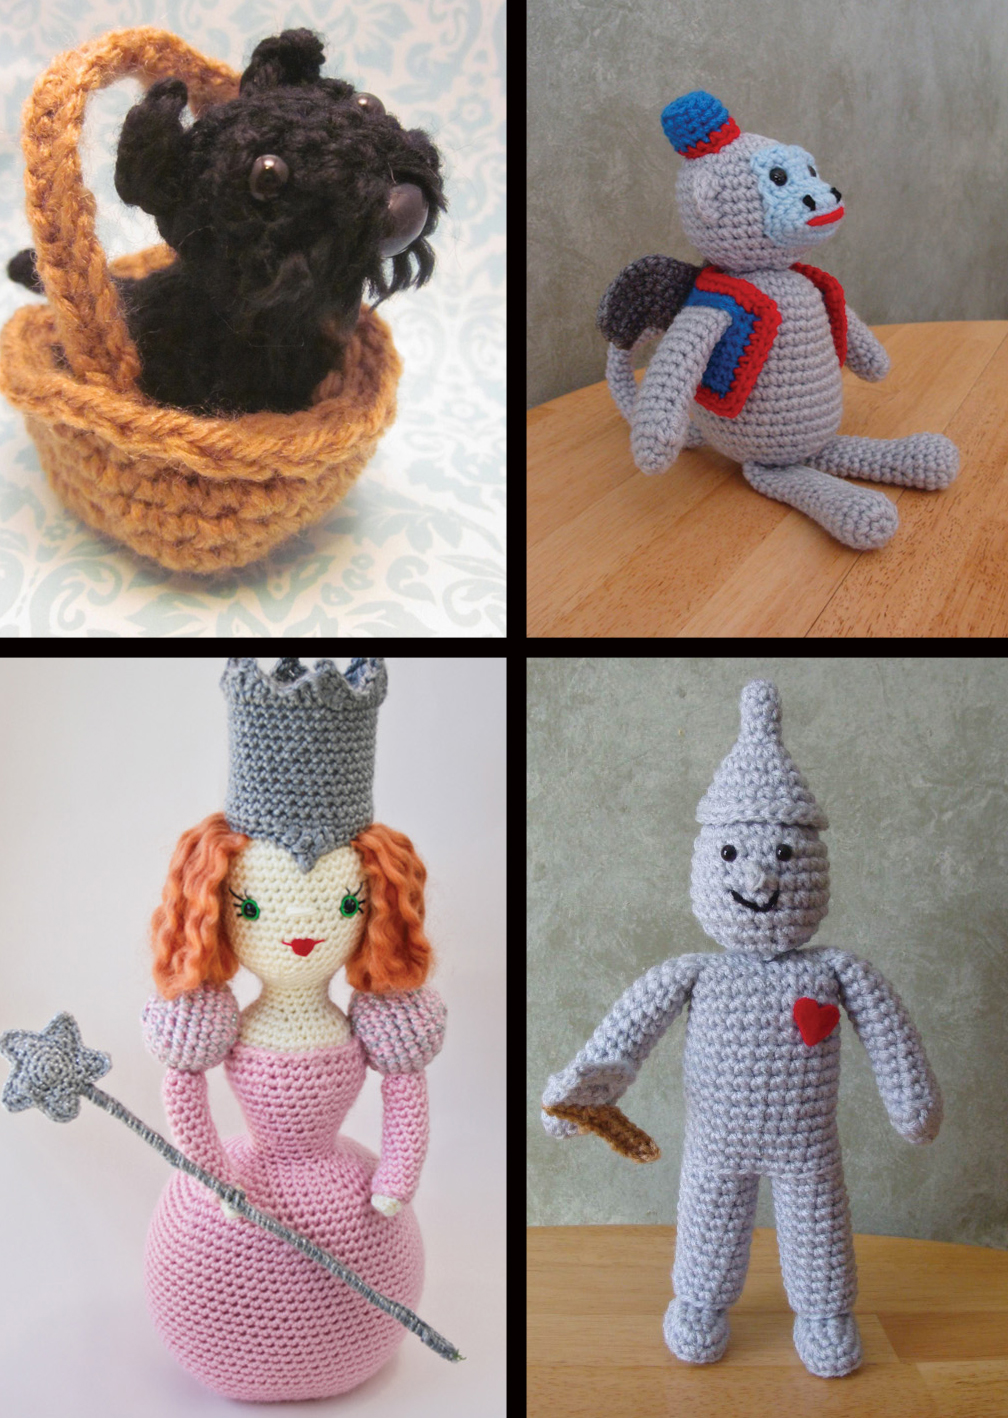 The Wizard of Oz Crochet Kit and Amigurumi Pattern Book